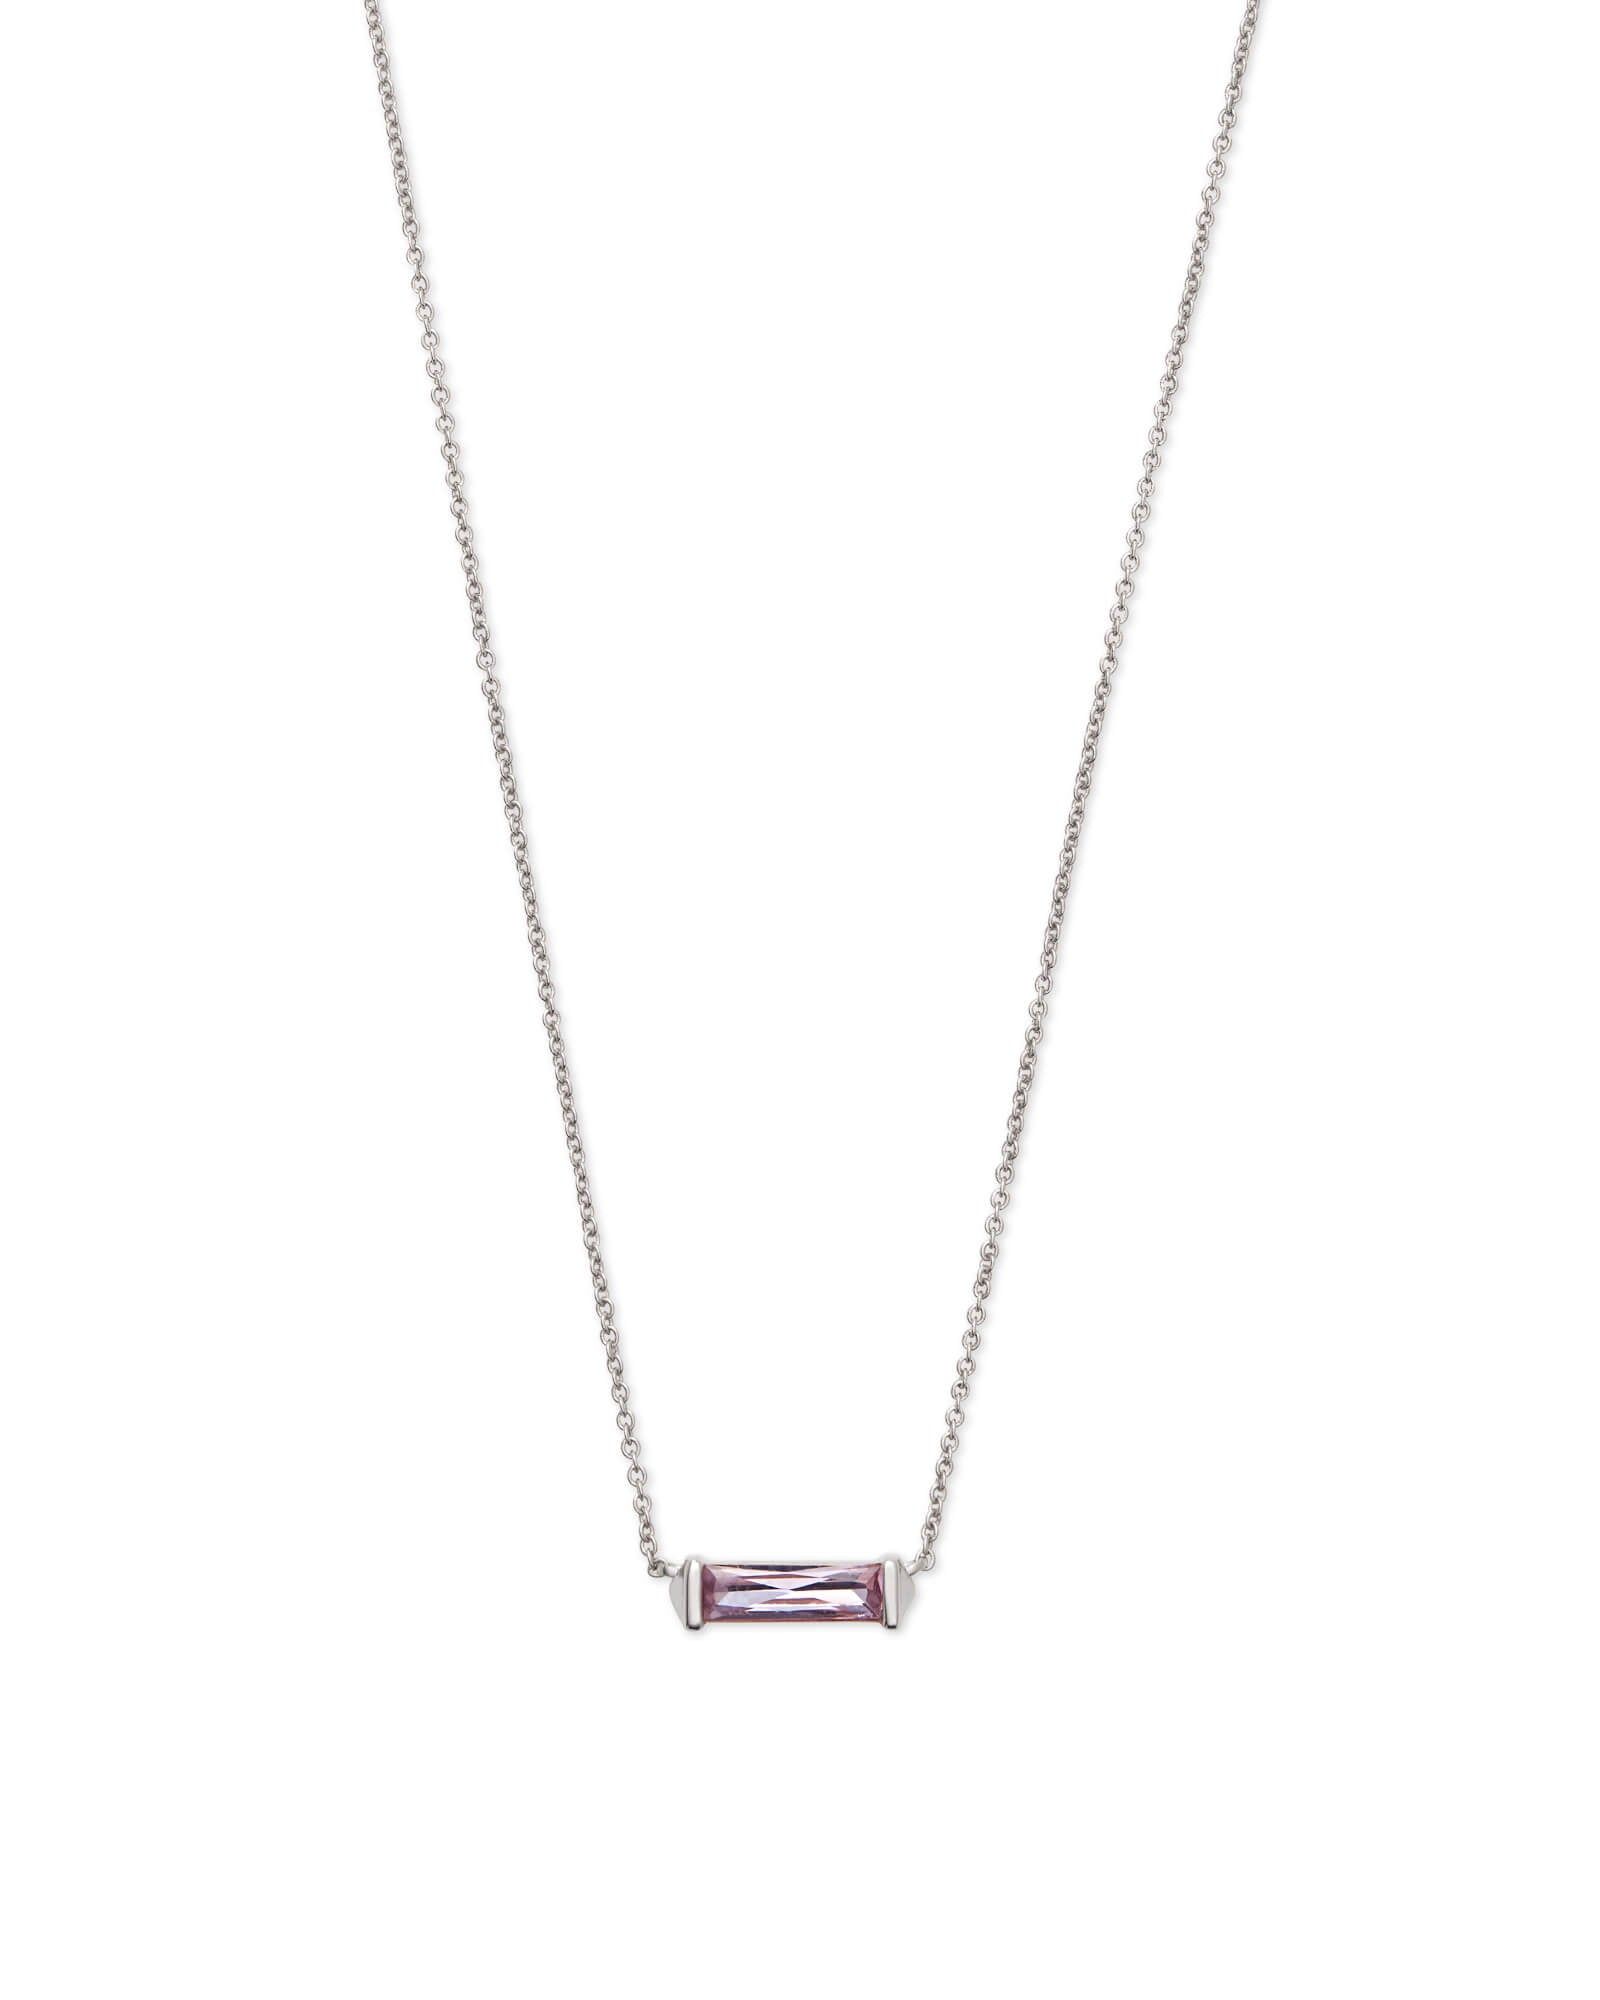 Rufus Silver Pendant Necklace in Lilac Crystal